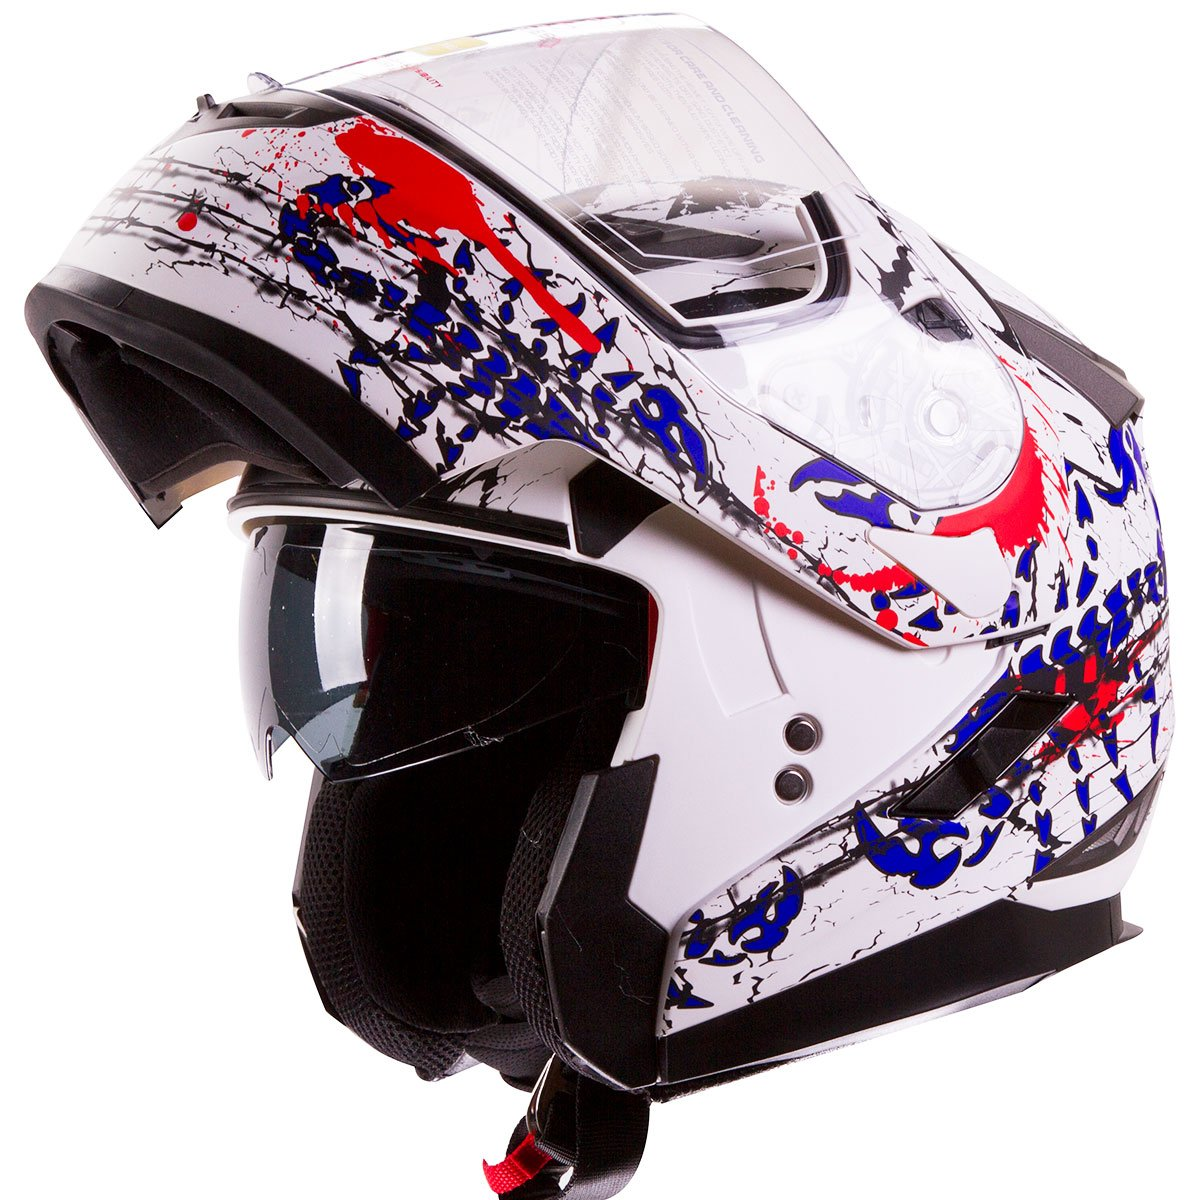 importance of ach helmets Sportsman's guide has your us military surplus mich helmet, new available at a great price in our helmets & accessories collection.